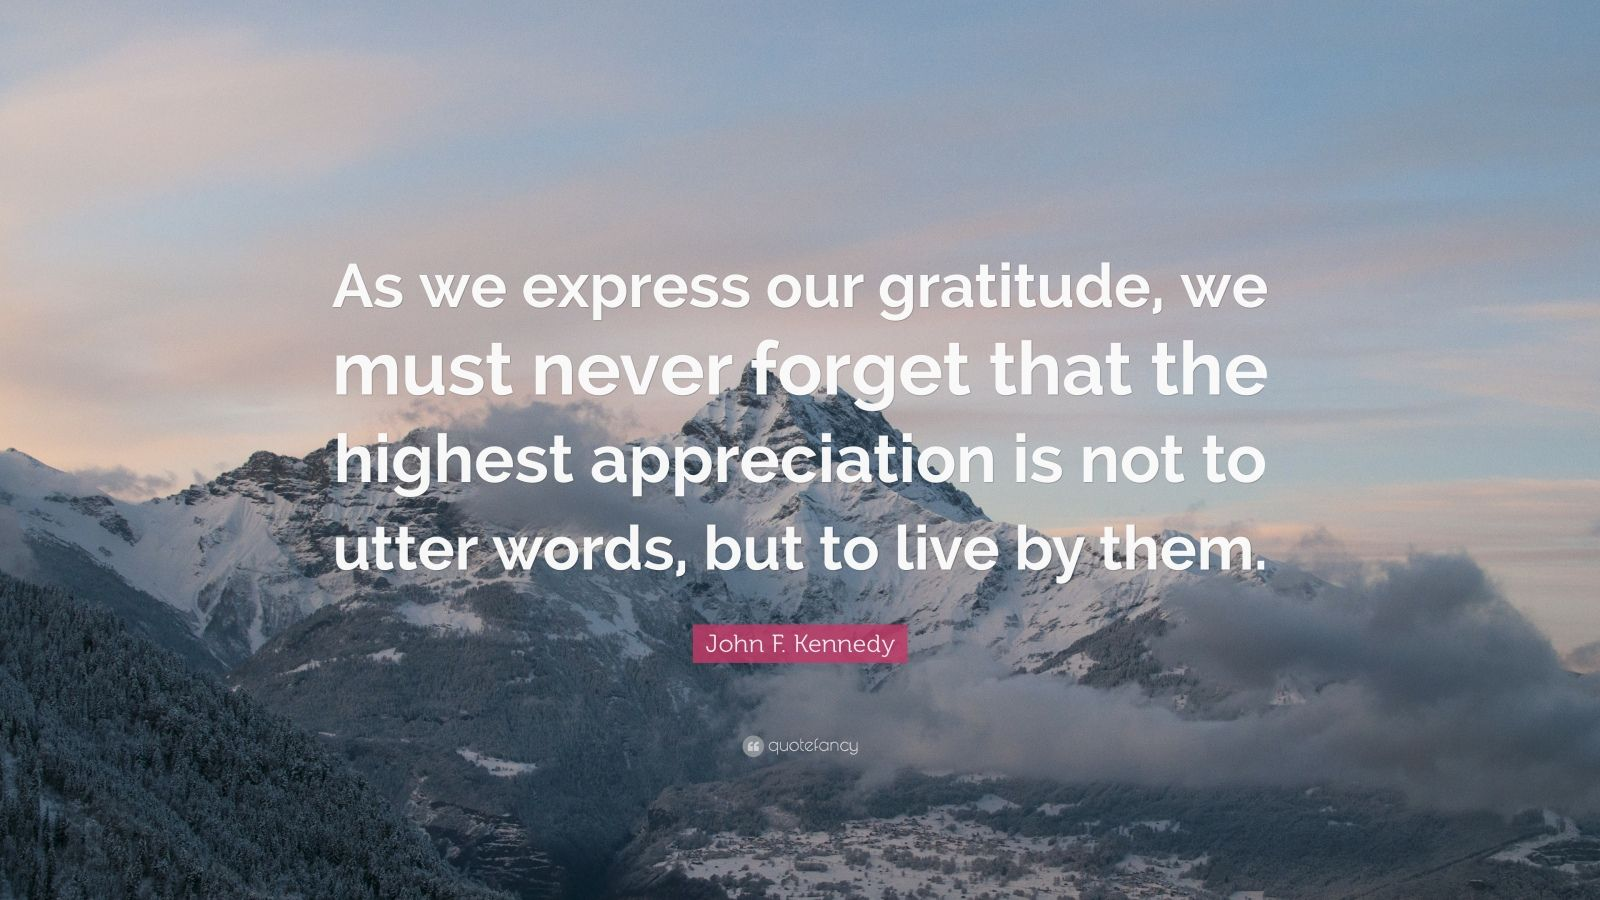 Jfk Quote Wallpaper John F Kennedy Quote As We Express Our Gratitude We